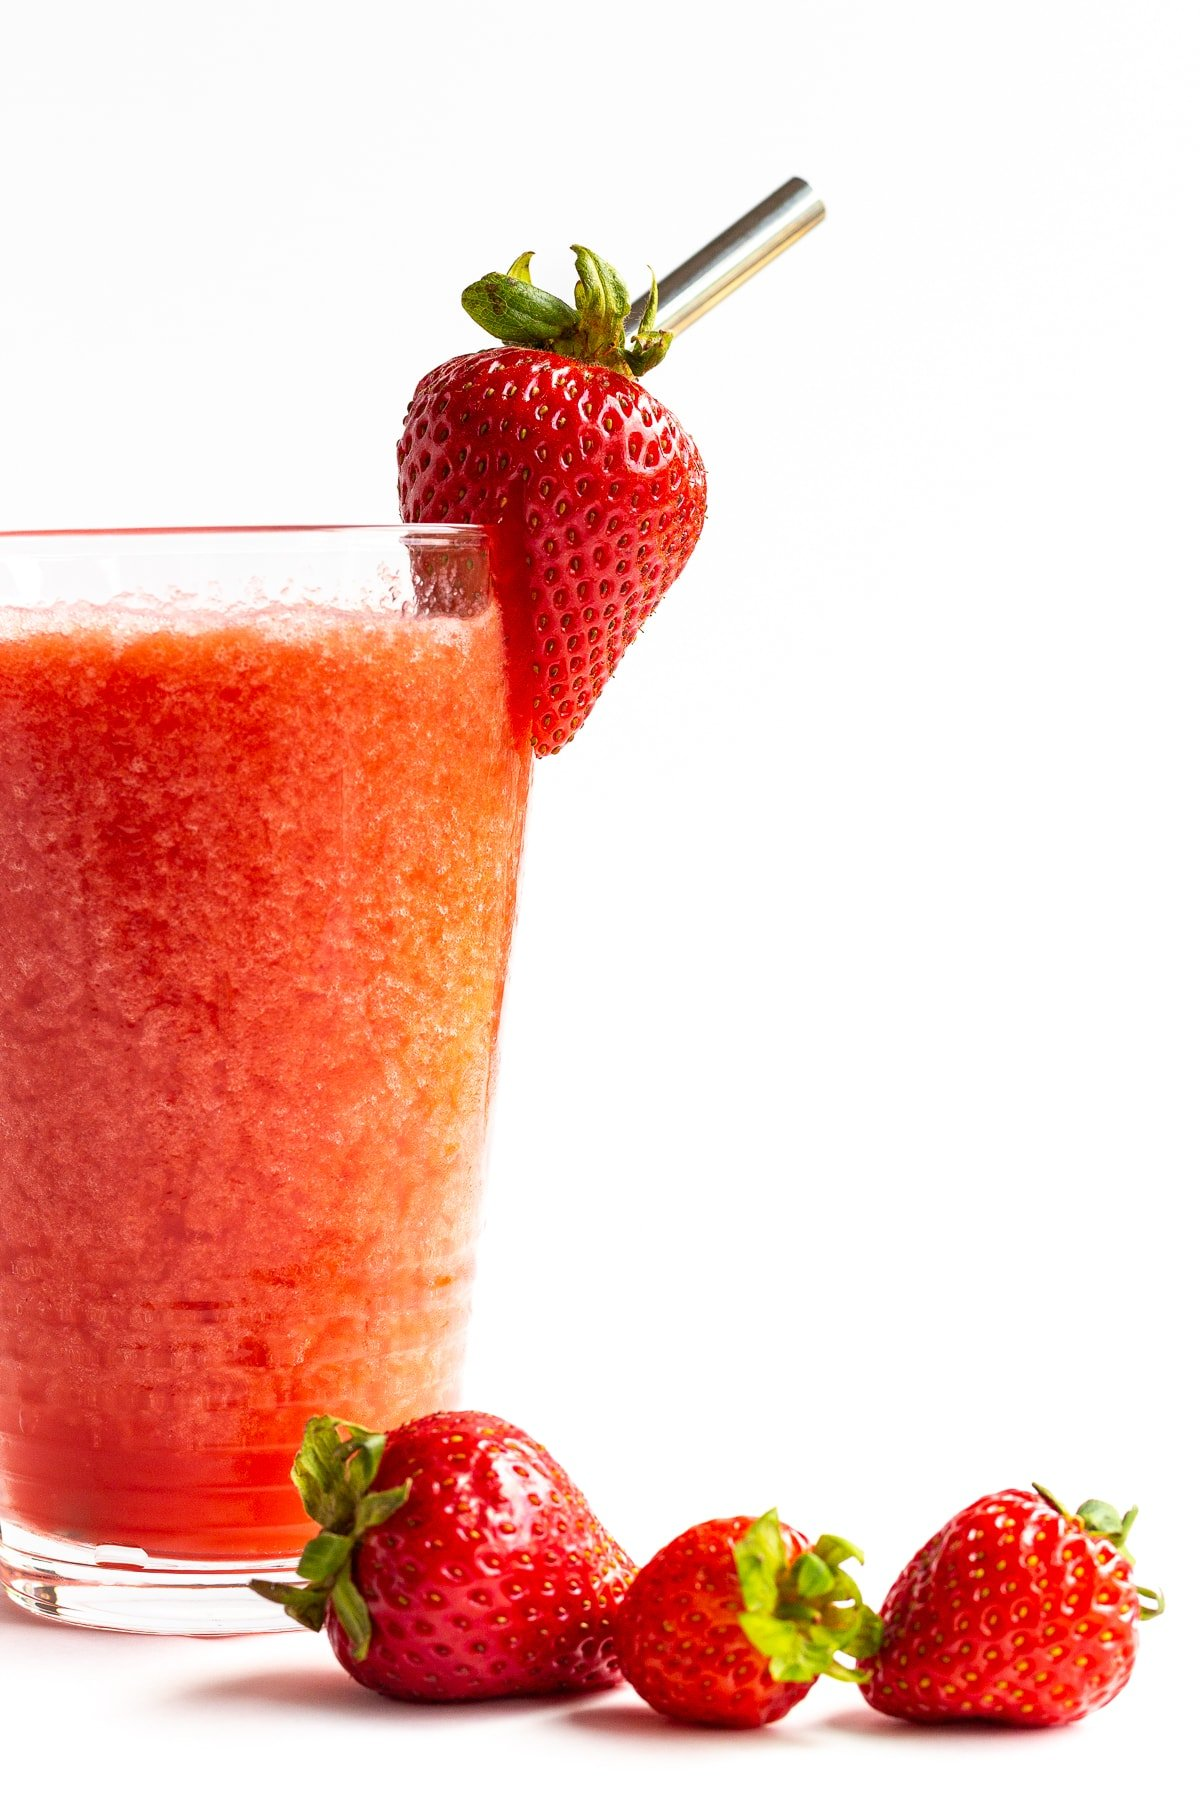 Glass of strawberry slushie with fresh strawberries scattered next to it.